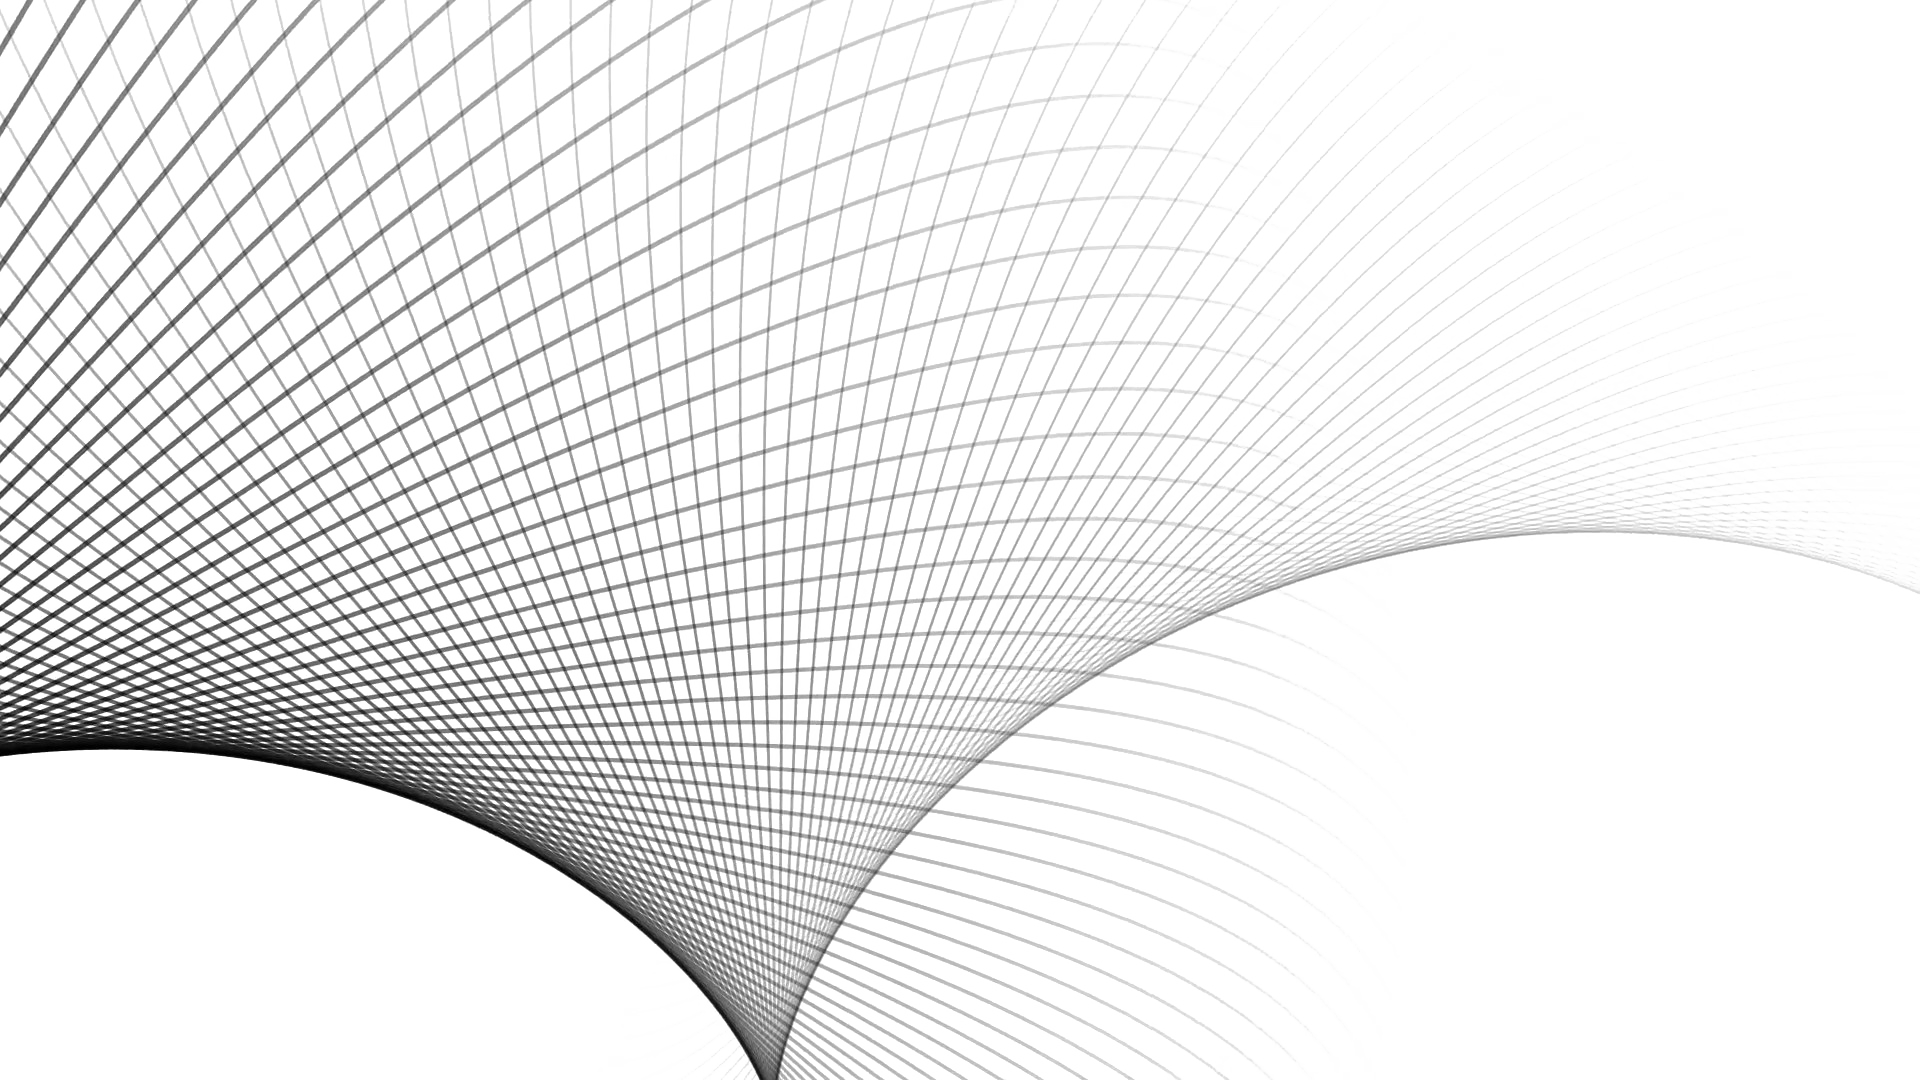 Background lines png. Abstract image mart